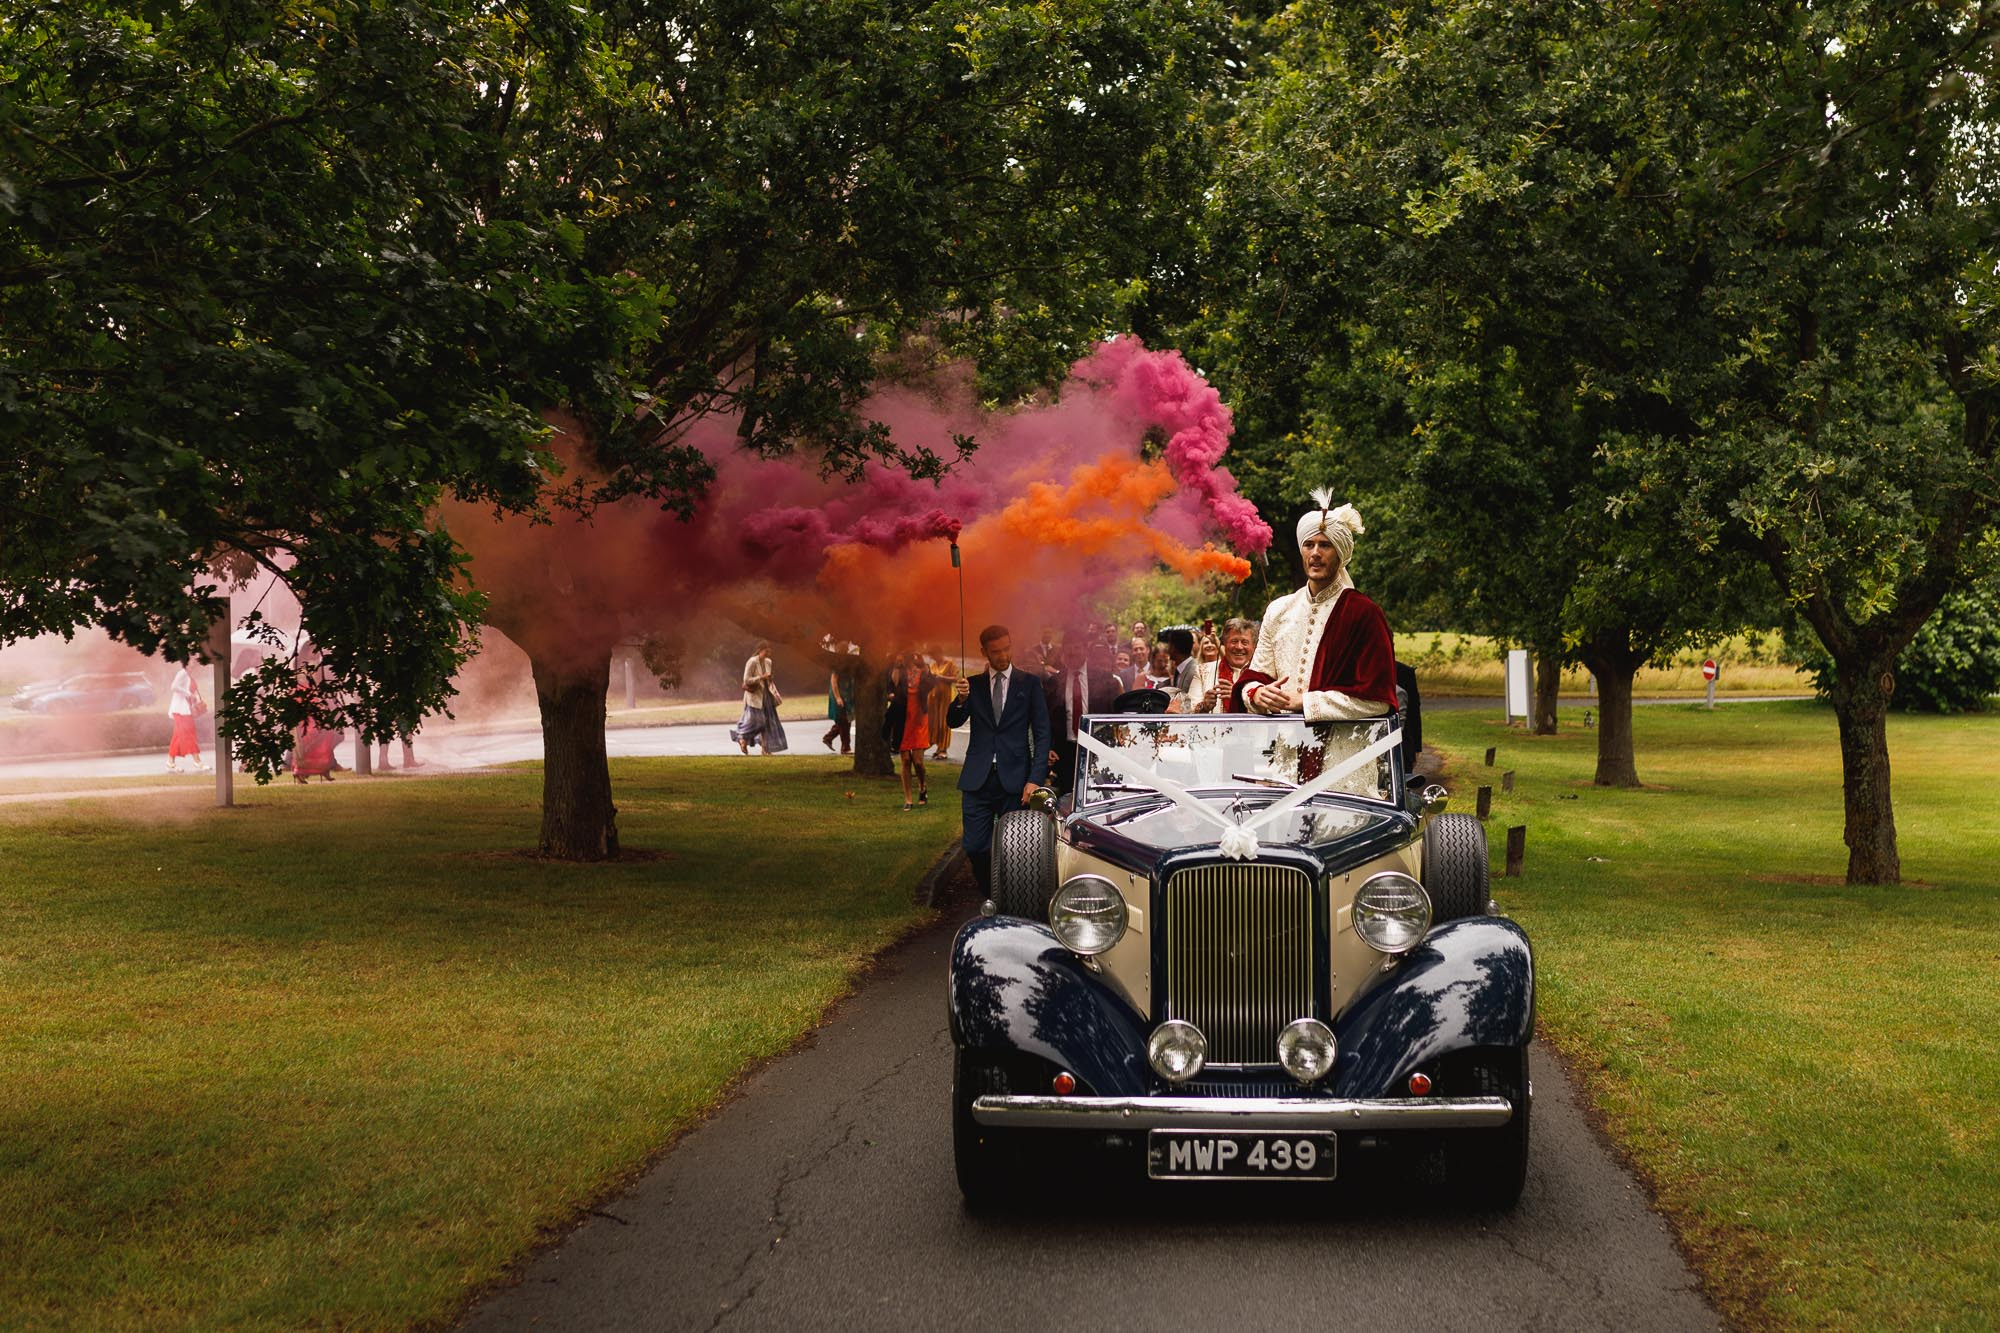 De Vere Wokefield Estate, Asian wedding photographer, grooms entrance, smoke bombs, smoke grenades